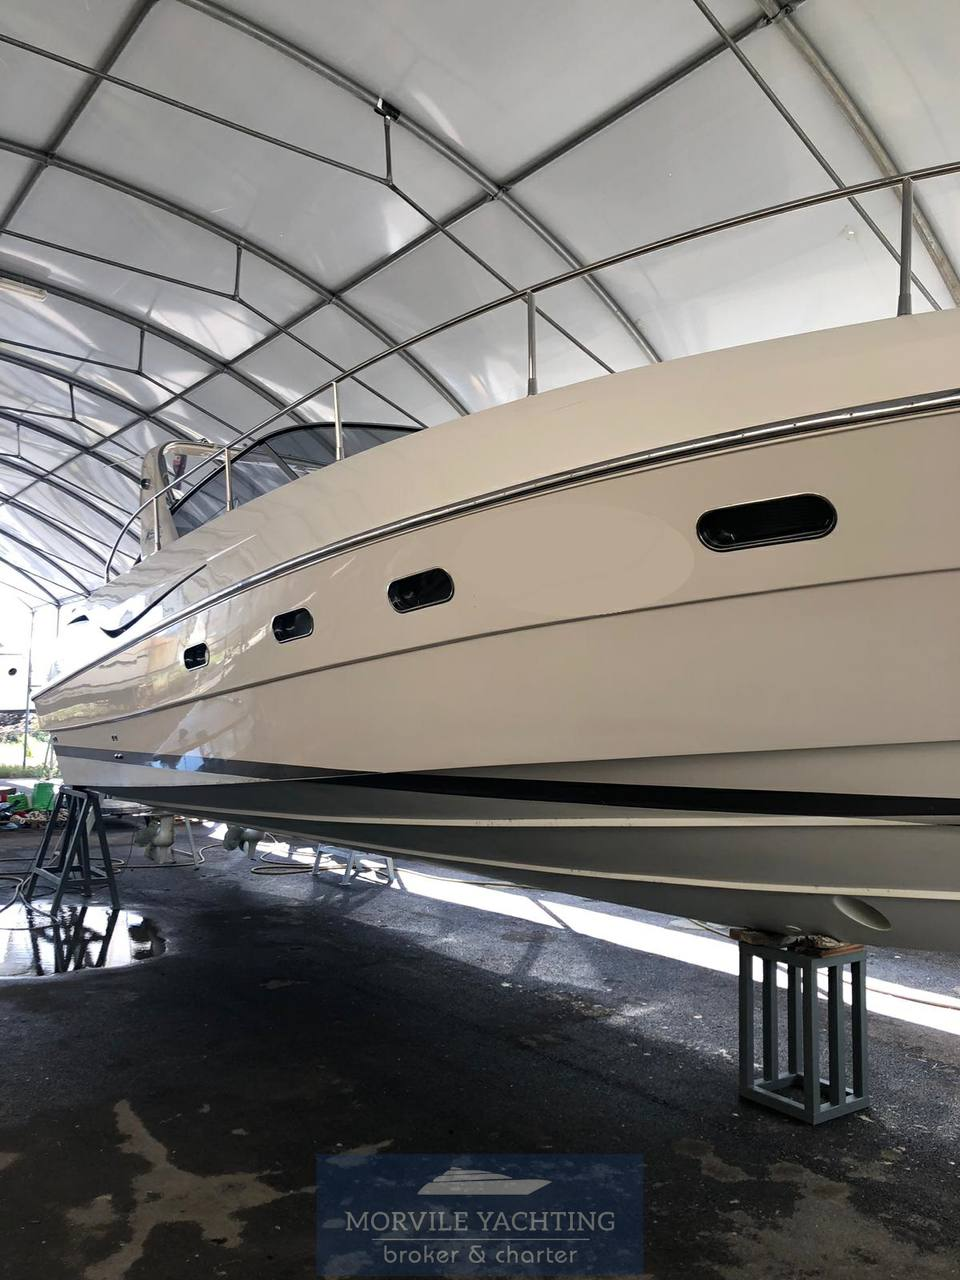 Fiart 38 genius Motor boat used for sale